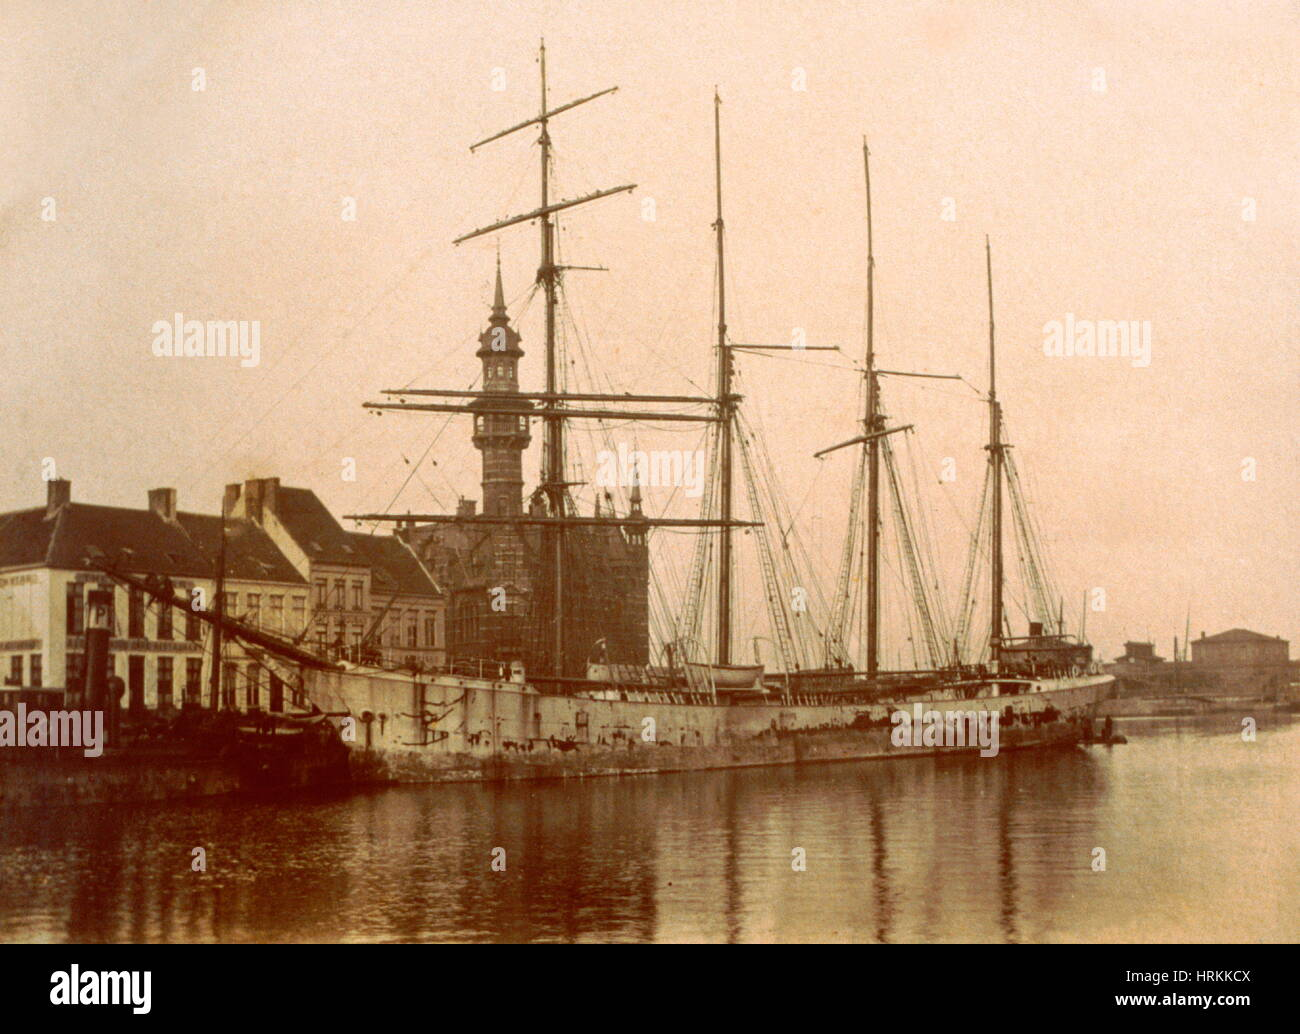 AJAXNETPHOTO.1905. OSTEND,BELGIUM. - SQUARE RIG TRADING - THE 1,034 TON (1050T) BARQUENTINE RENFIELD AWAITING CARGO. - Stock Image